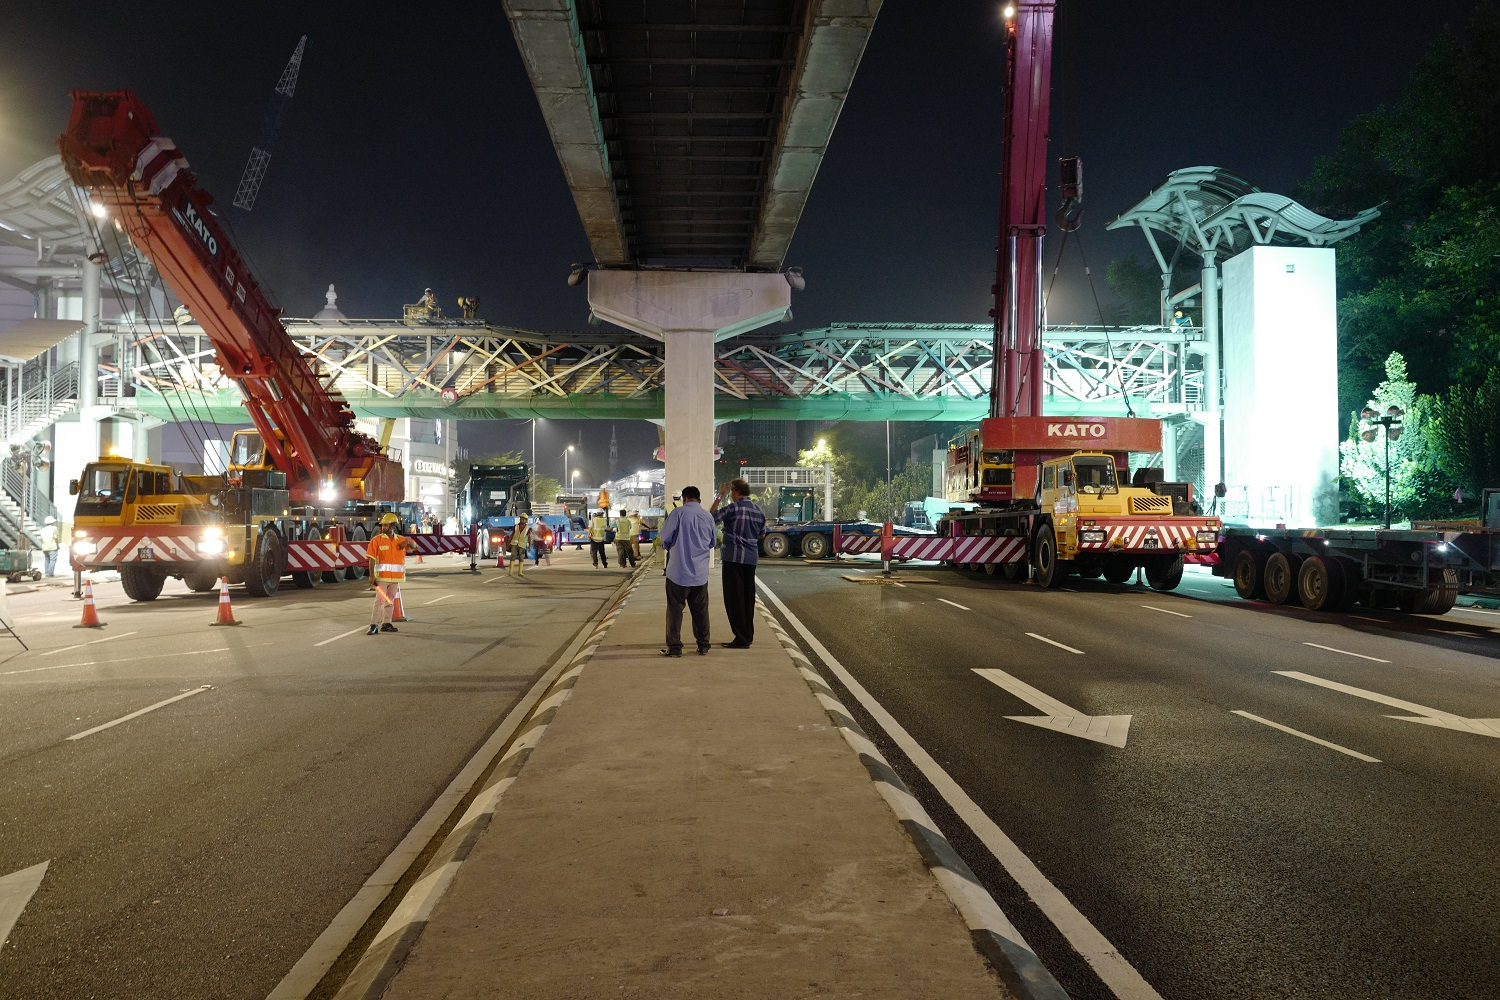 40m Pedestrian Steel Bridge Take down